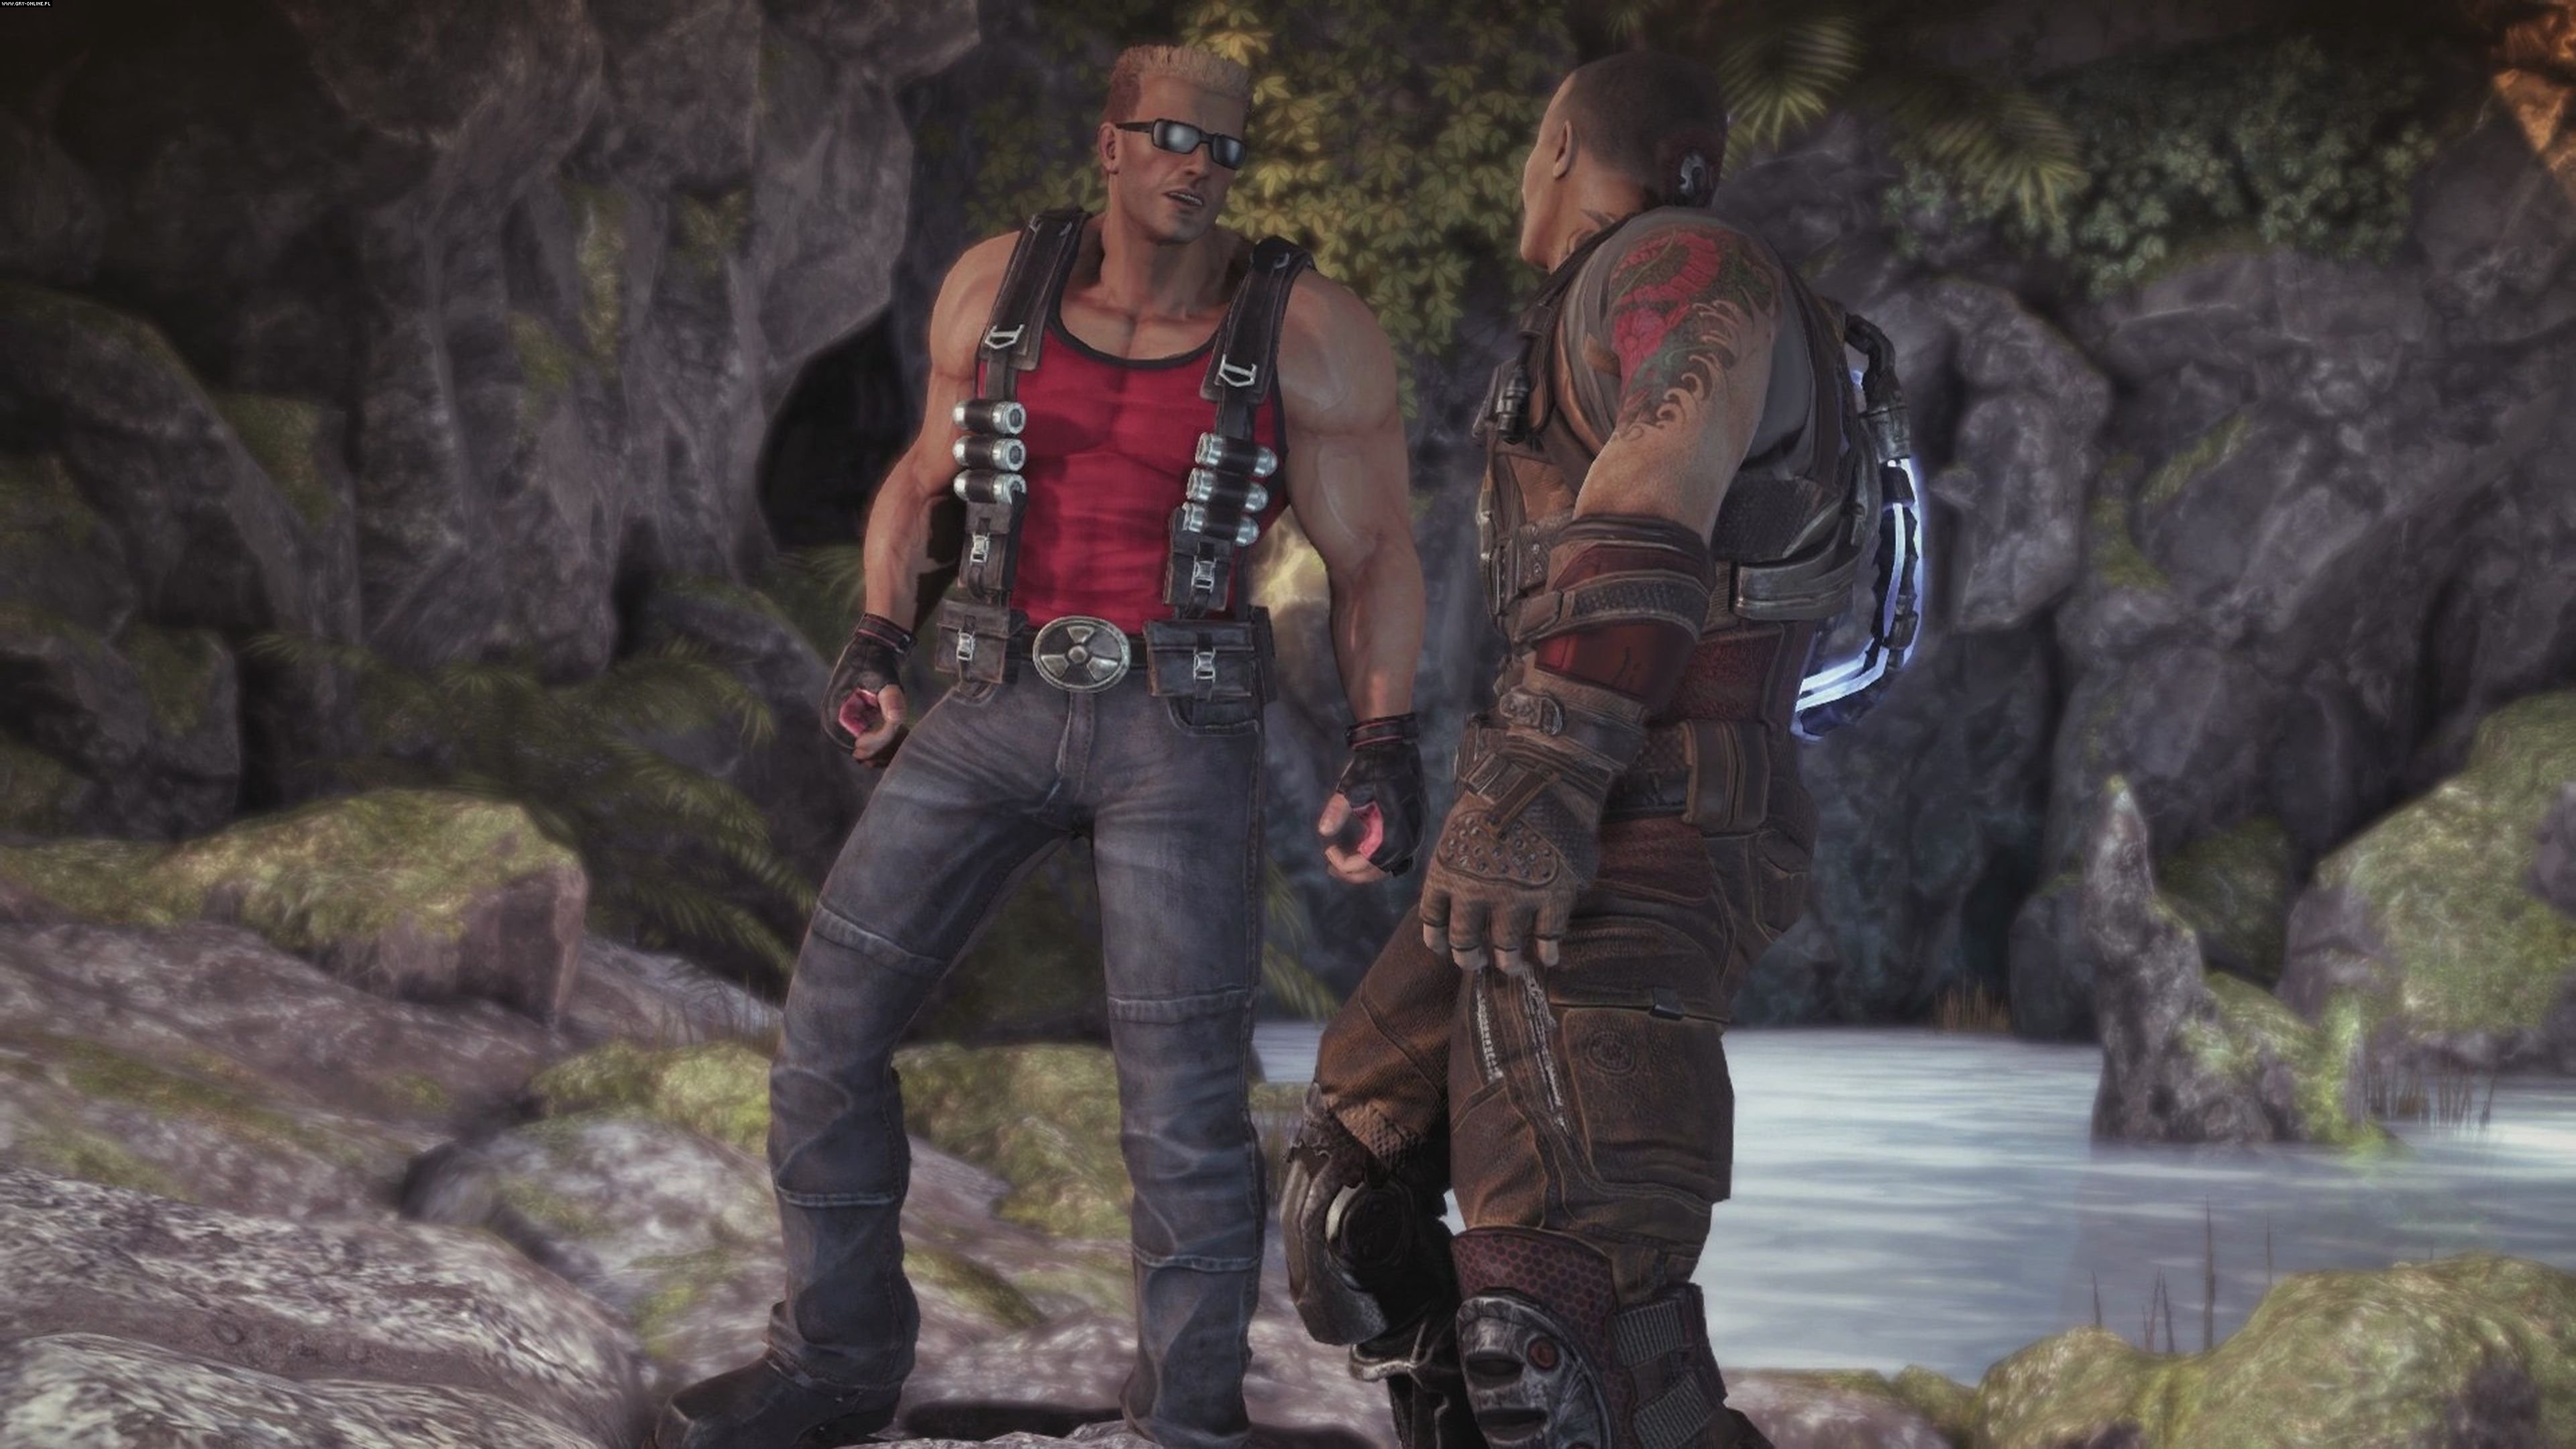 Bulletstorm: Full Clip Edition PC, PS4 Games Image 6/27, People Can Fly, Gearbox Publishing